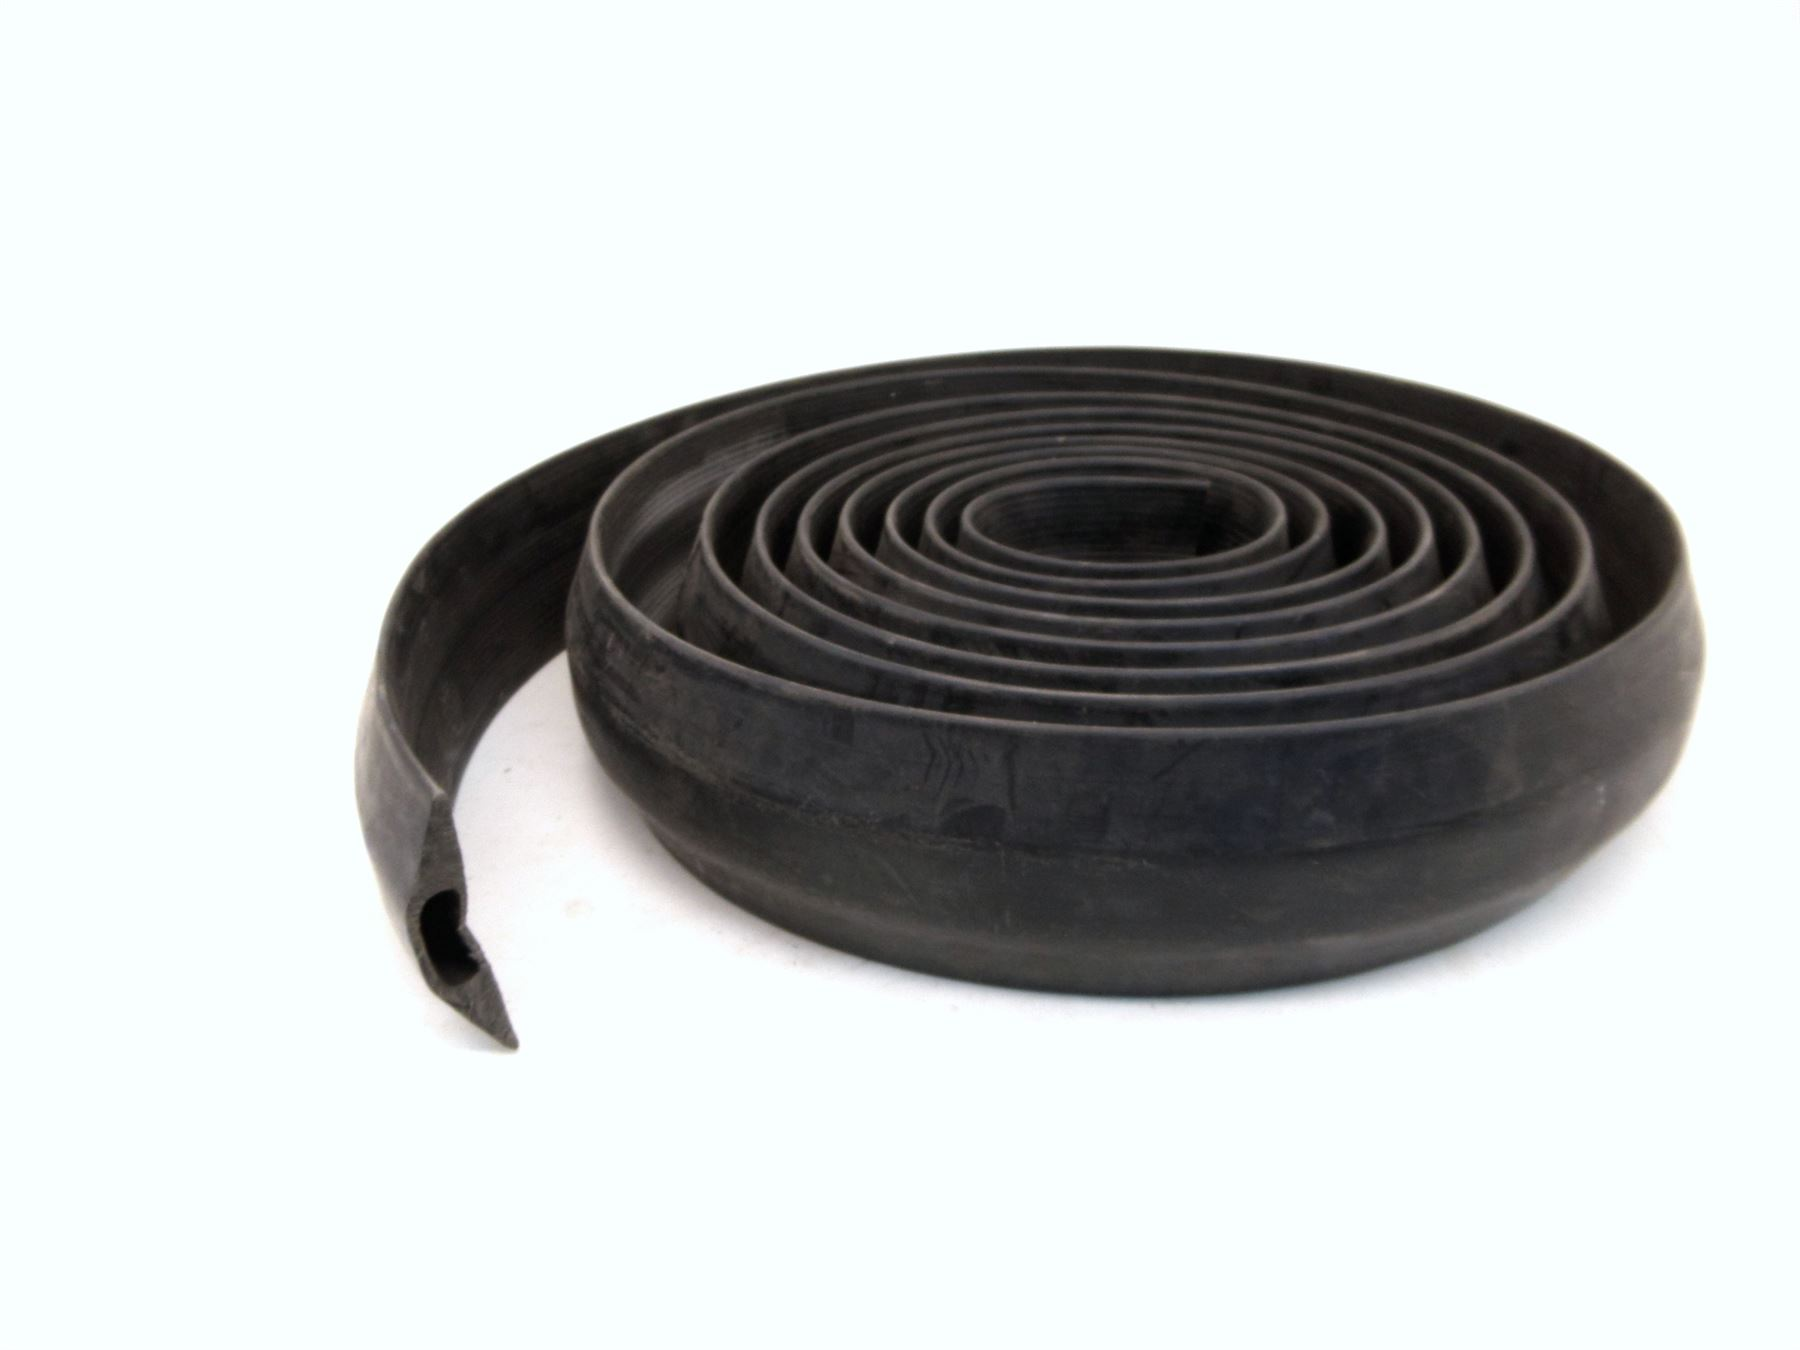 black rubber cable protector floor cover wire tidy safety trunking 6 meter me. Black Bedroom Furniture Sets. Home Design Ideas